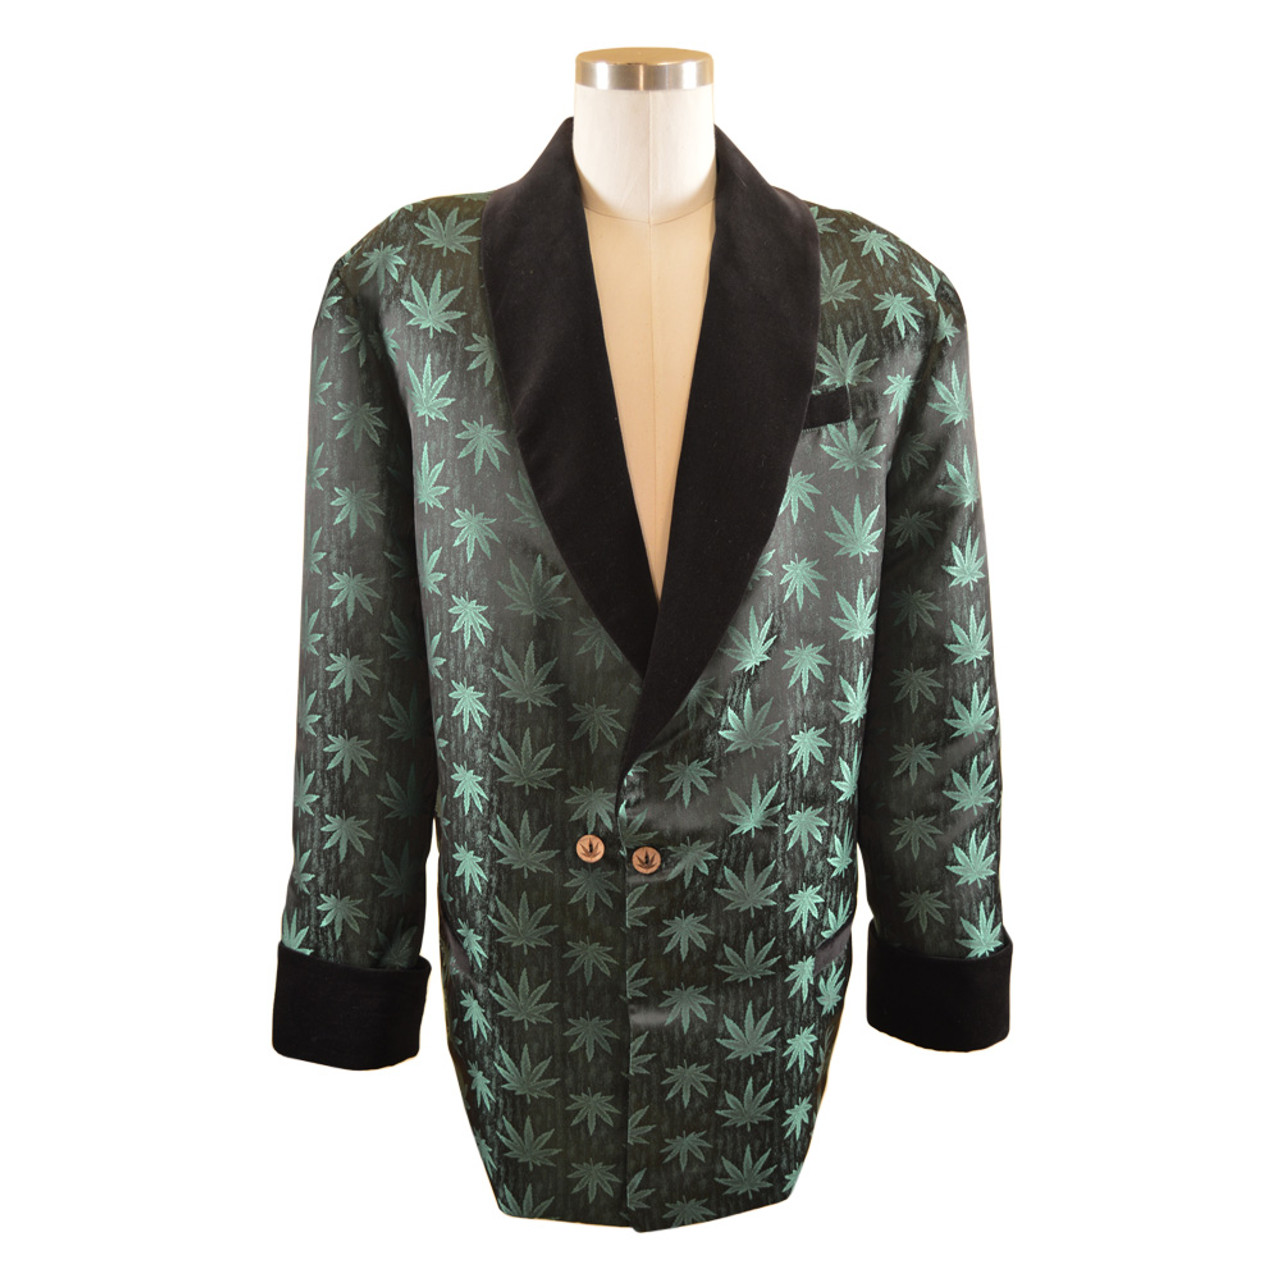 68ac4811fd3 Men s Marijuana Print Smoking Jacket